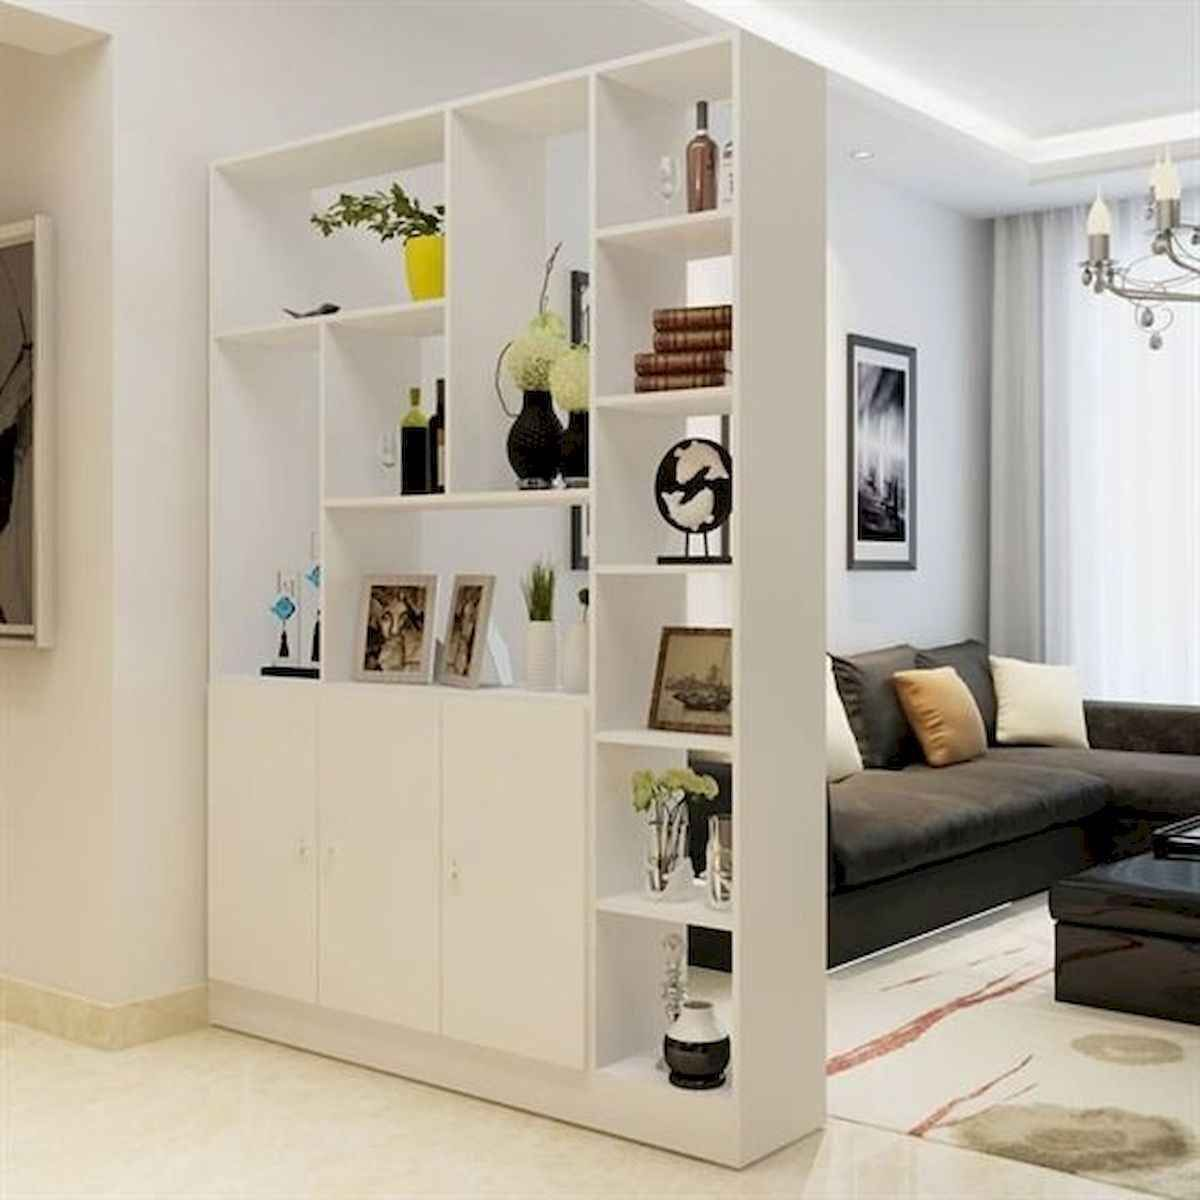 60 Favorite Studio Apartment Storage Decor Ideas And Remodel 6 Living Room Partition Design Living Room Partition Room Partition Designs